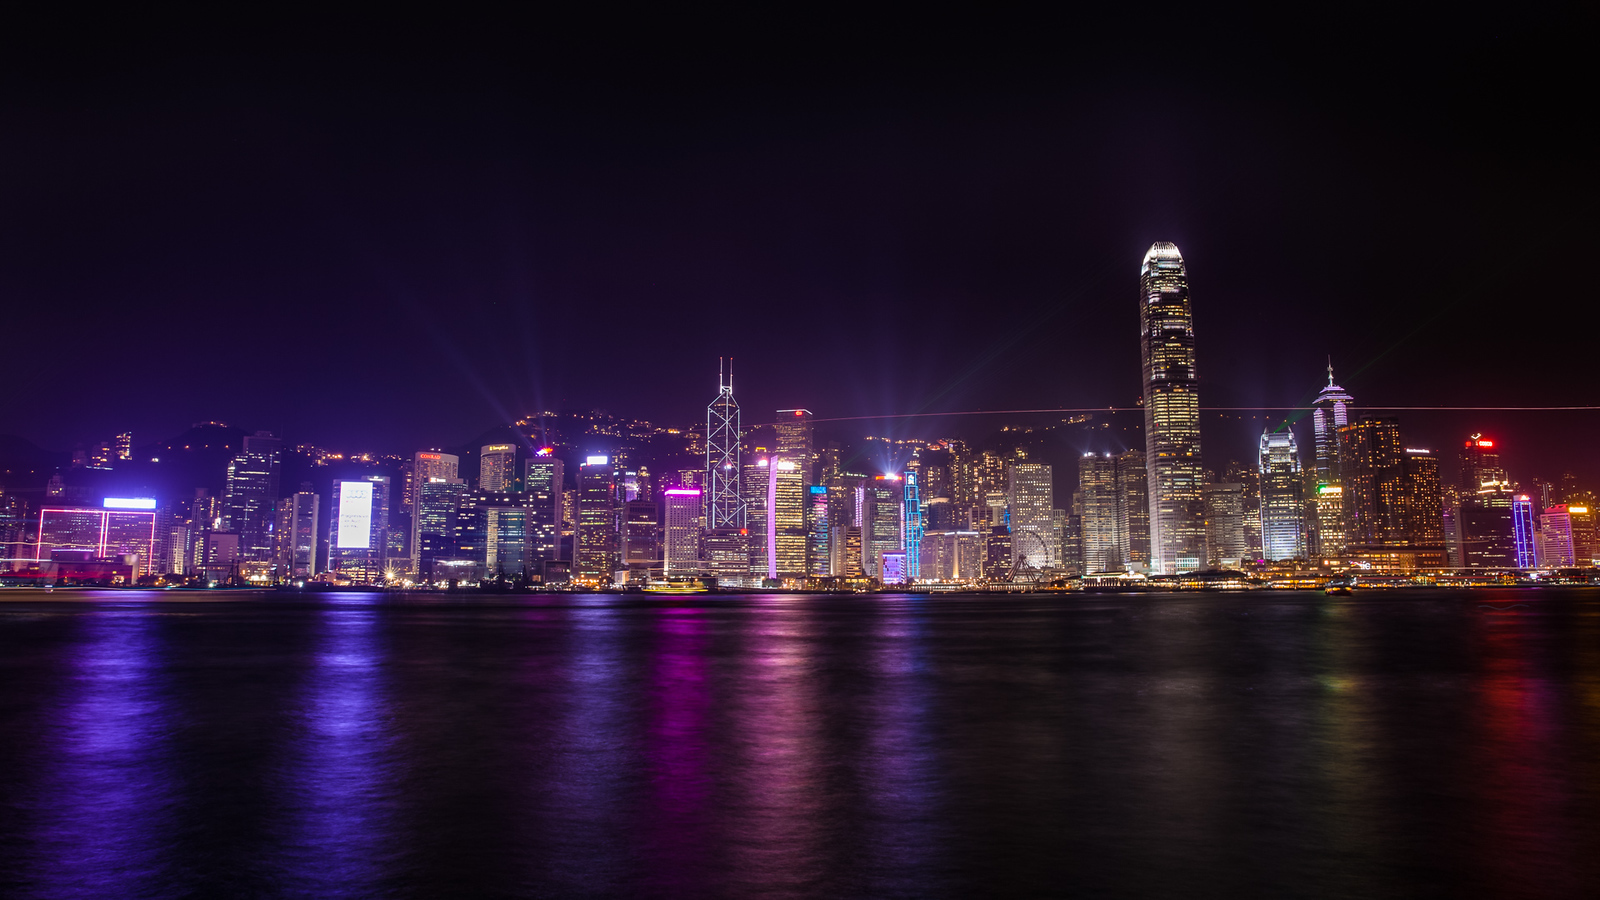 The famous light show from Harbour City Hong Kong